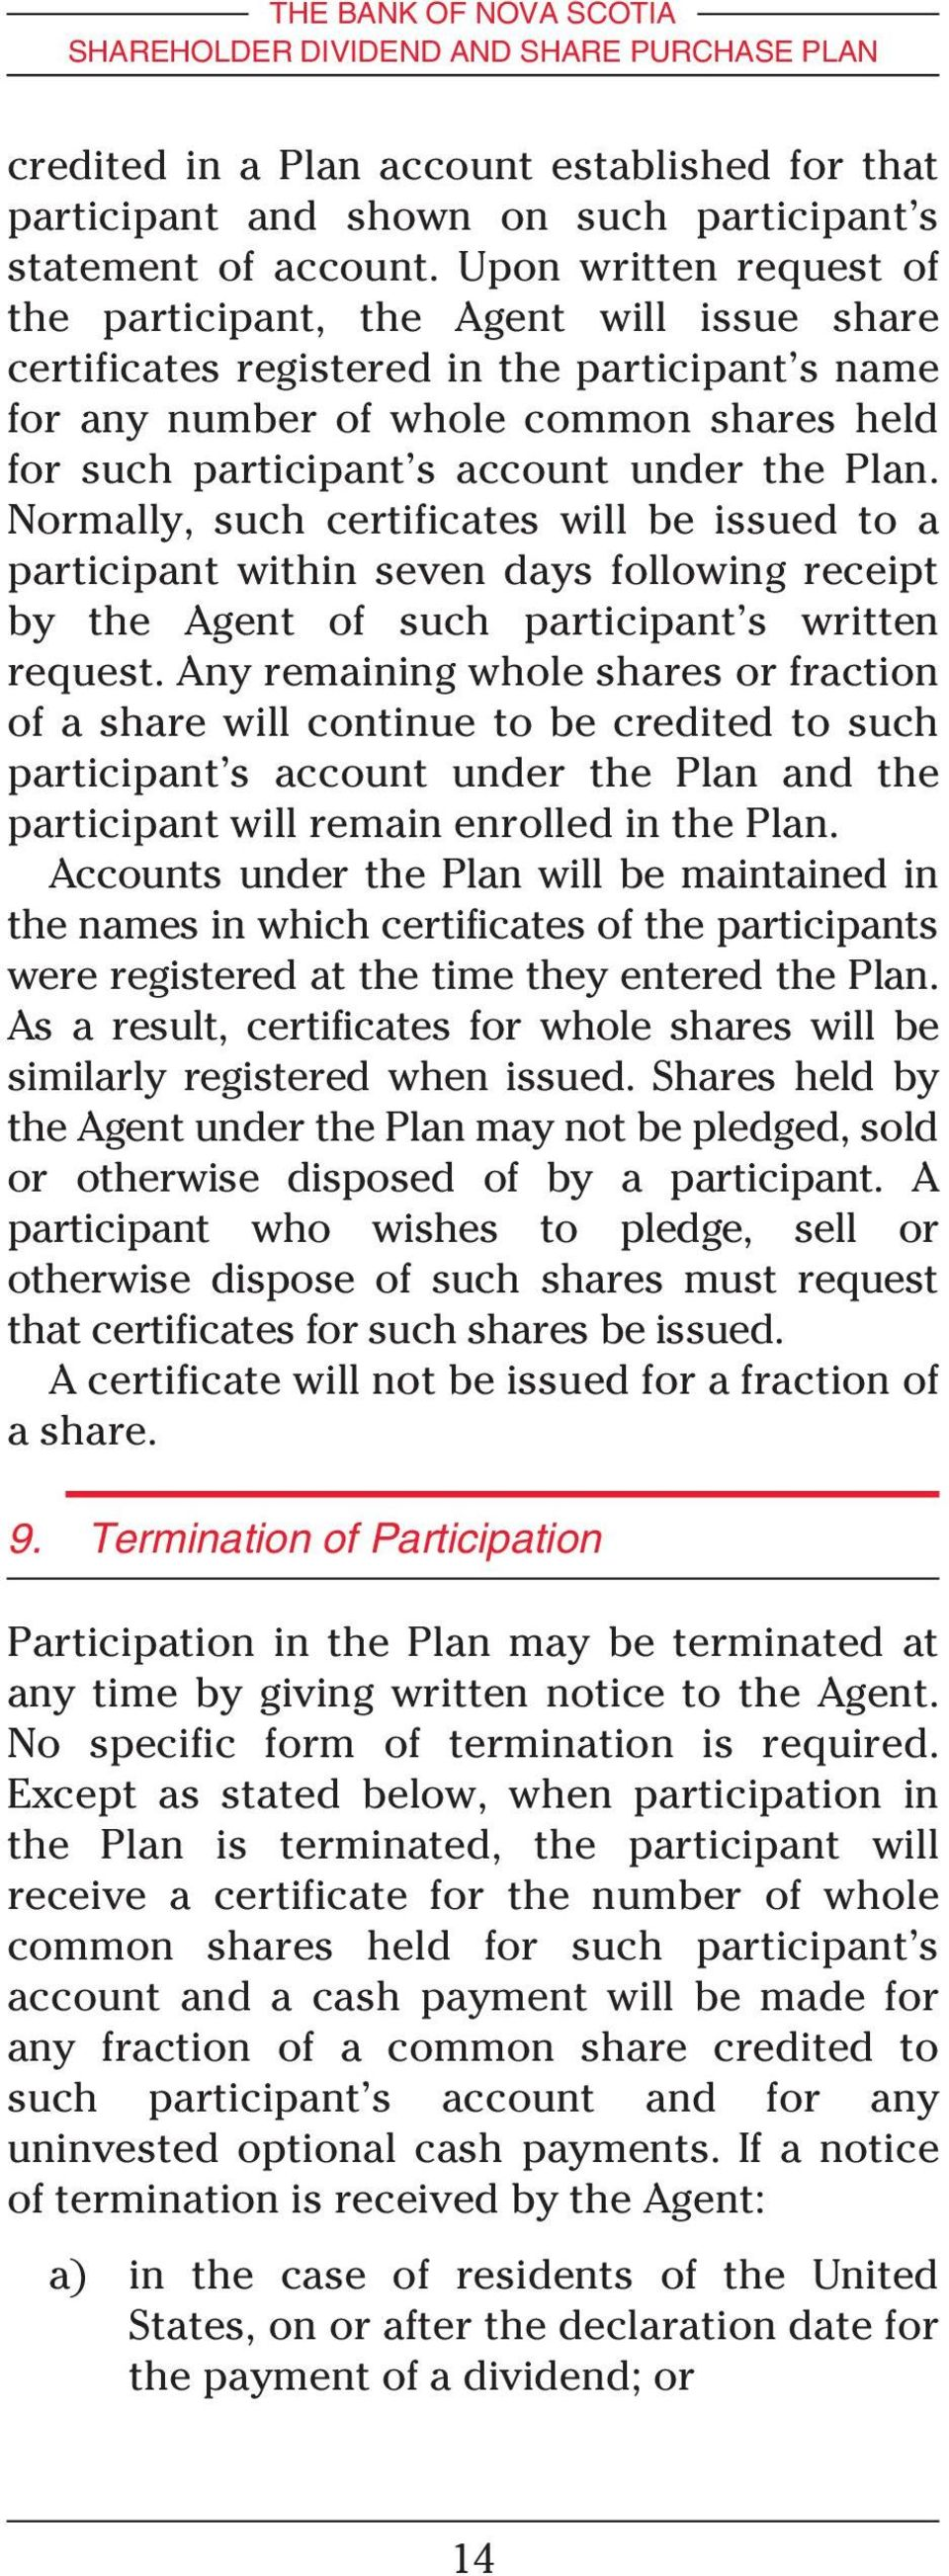 the Plan. Normally, such certificates will be issued to a participant within seven days following receipt by the Agent of such participant s written request.